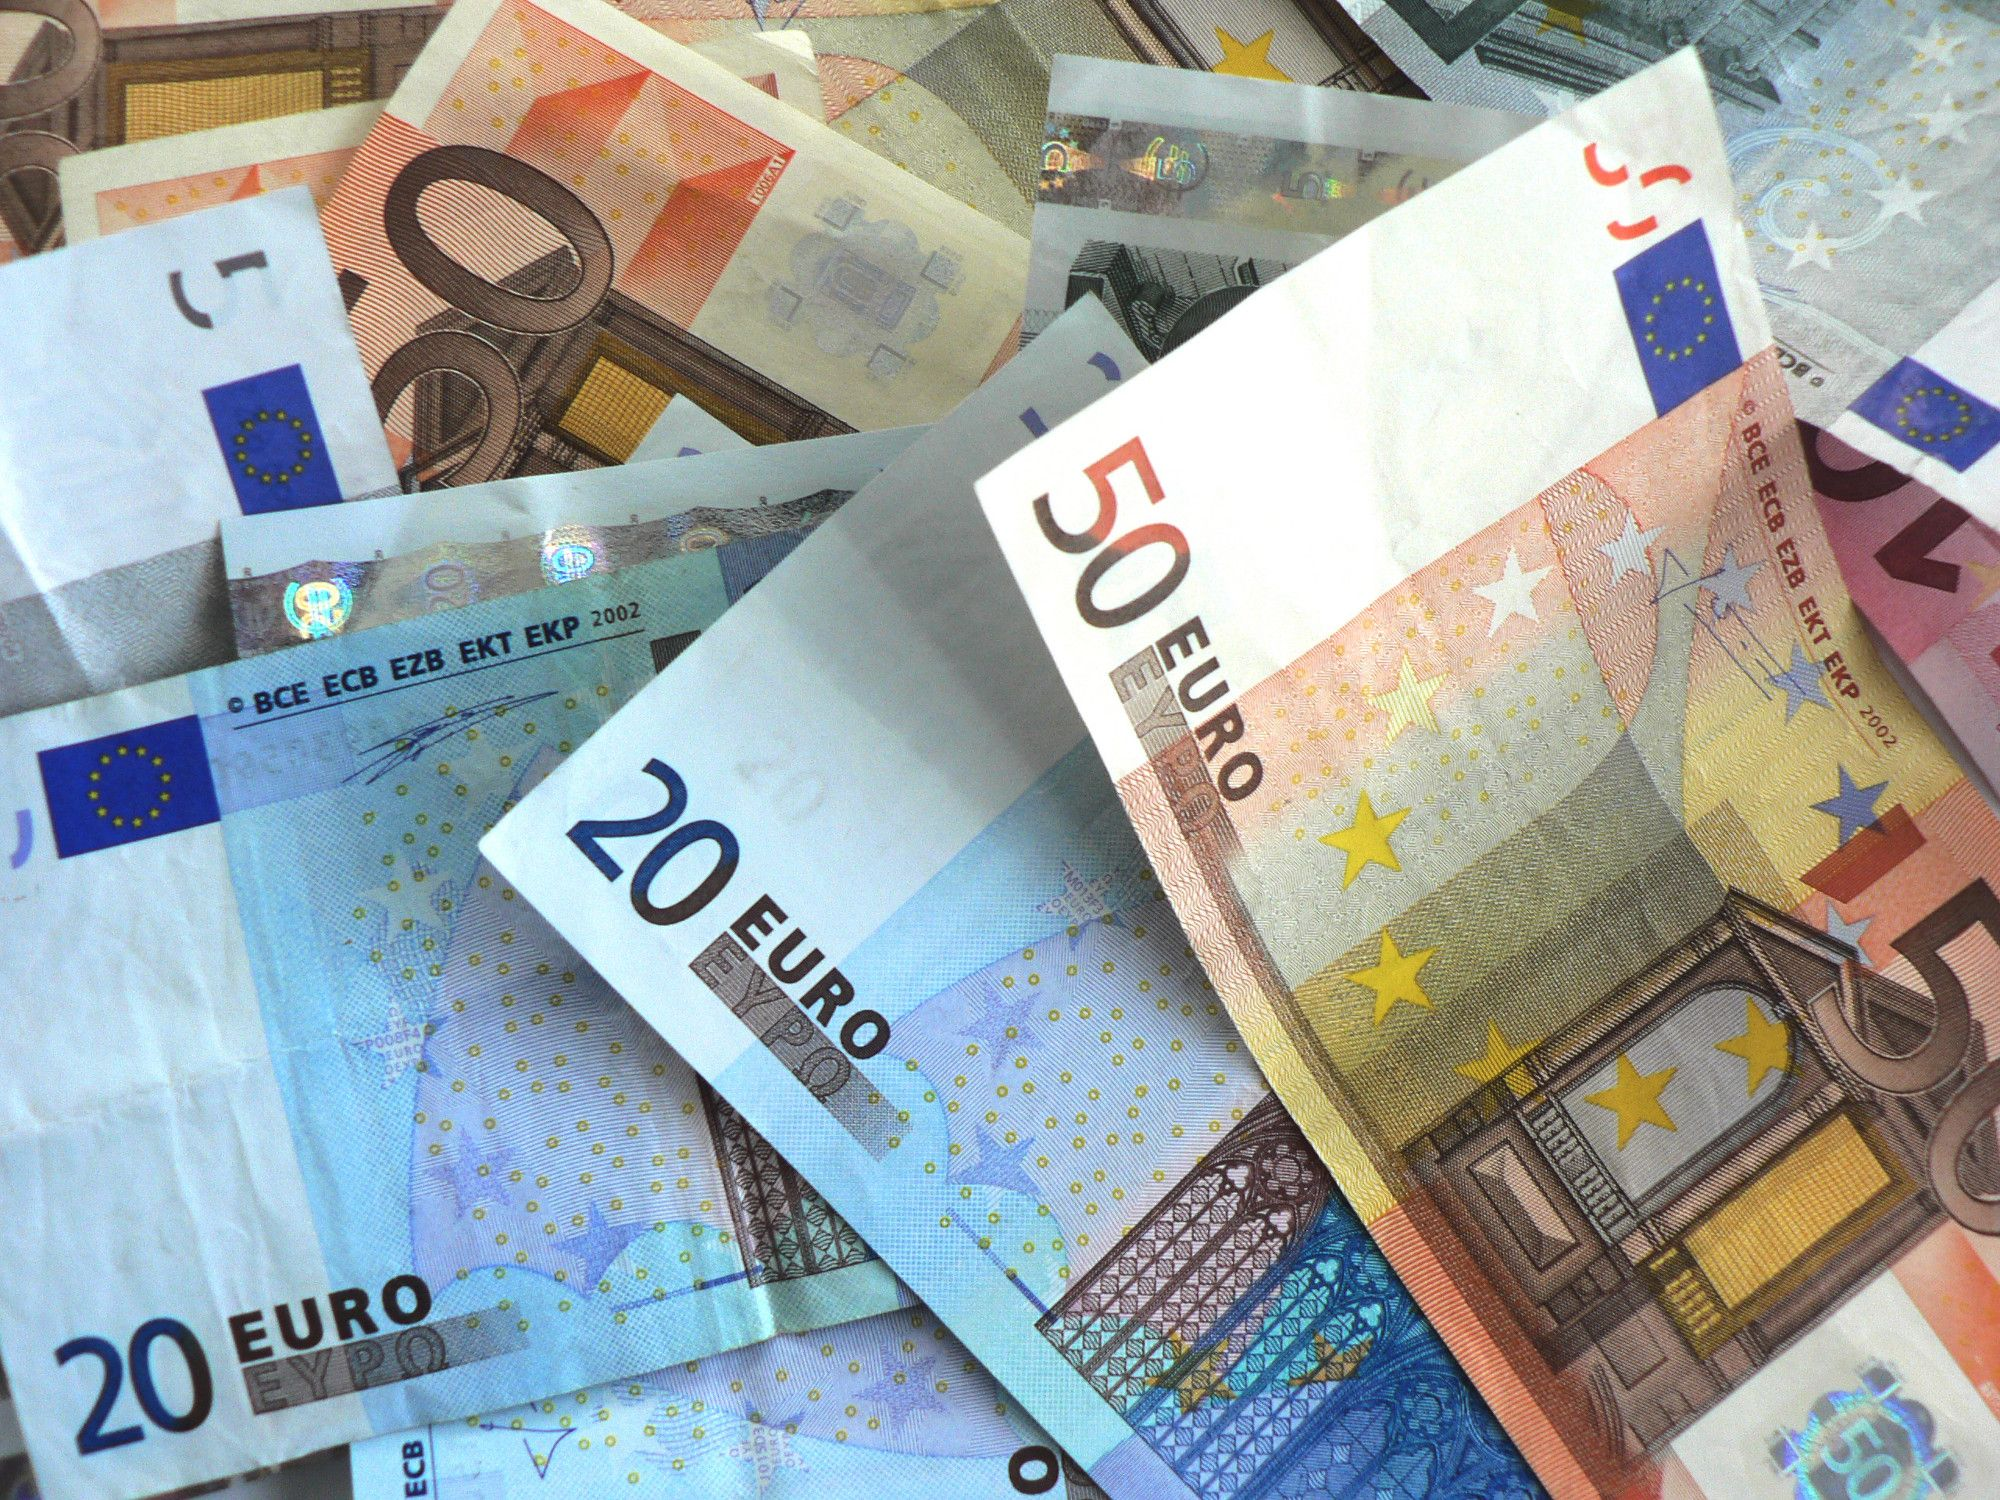 Euro Currency Money Cash Budget Planner Free Images For Blogs